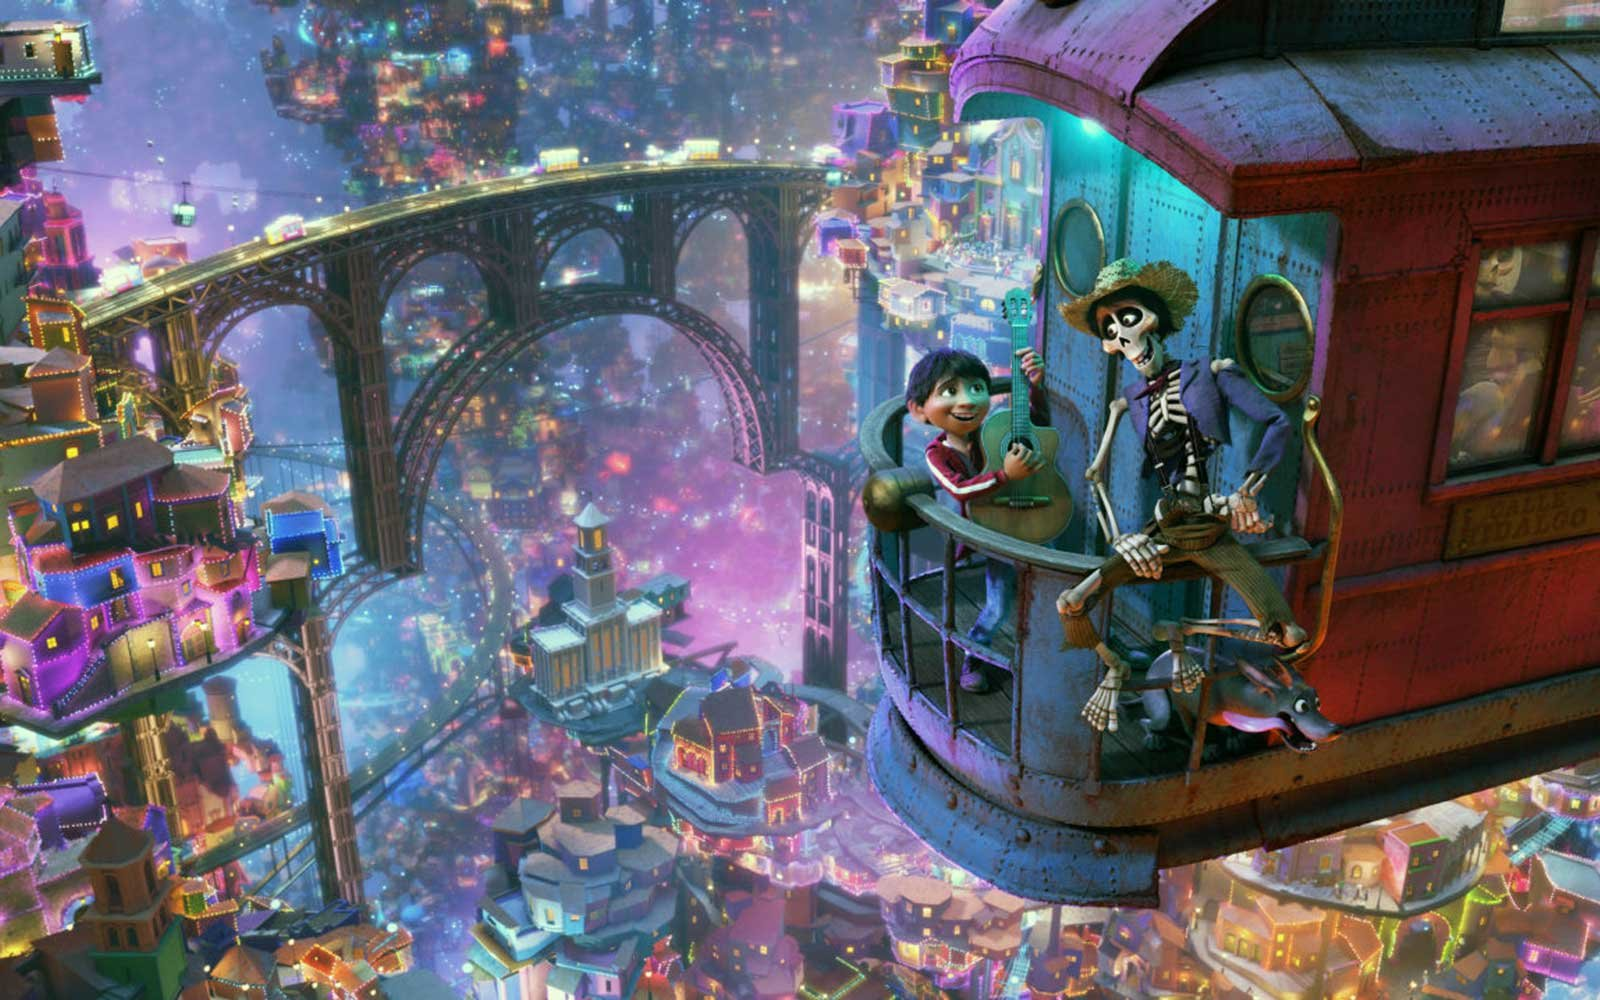 film still from Coco by Pixar Animation Studios and Walt Disney Pictures